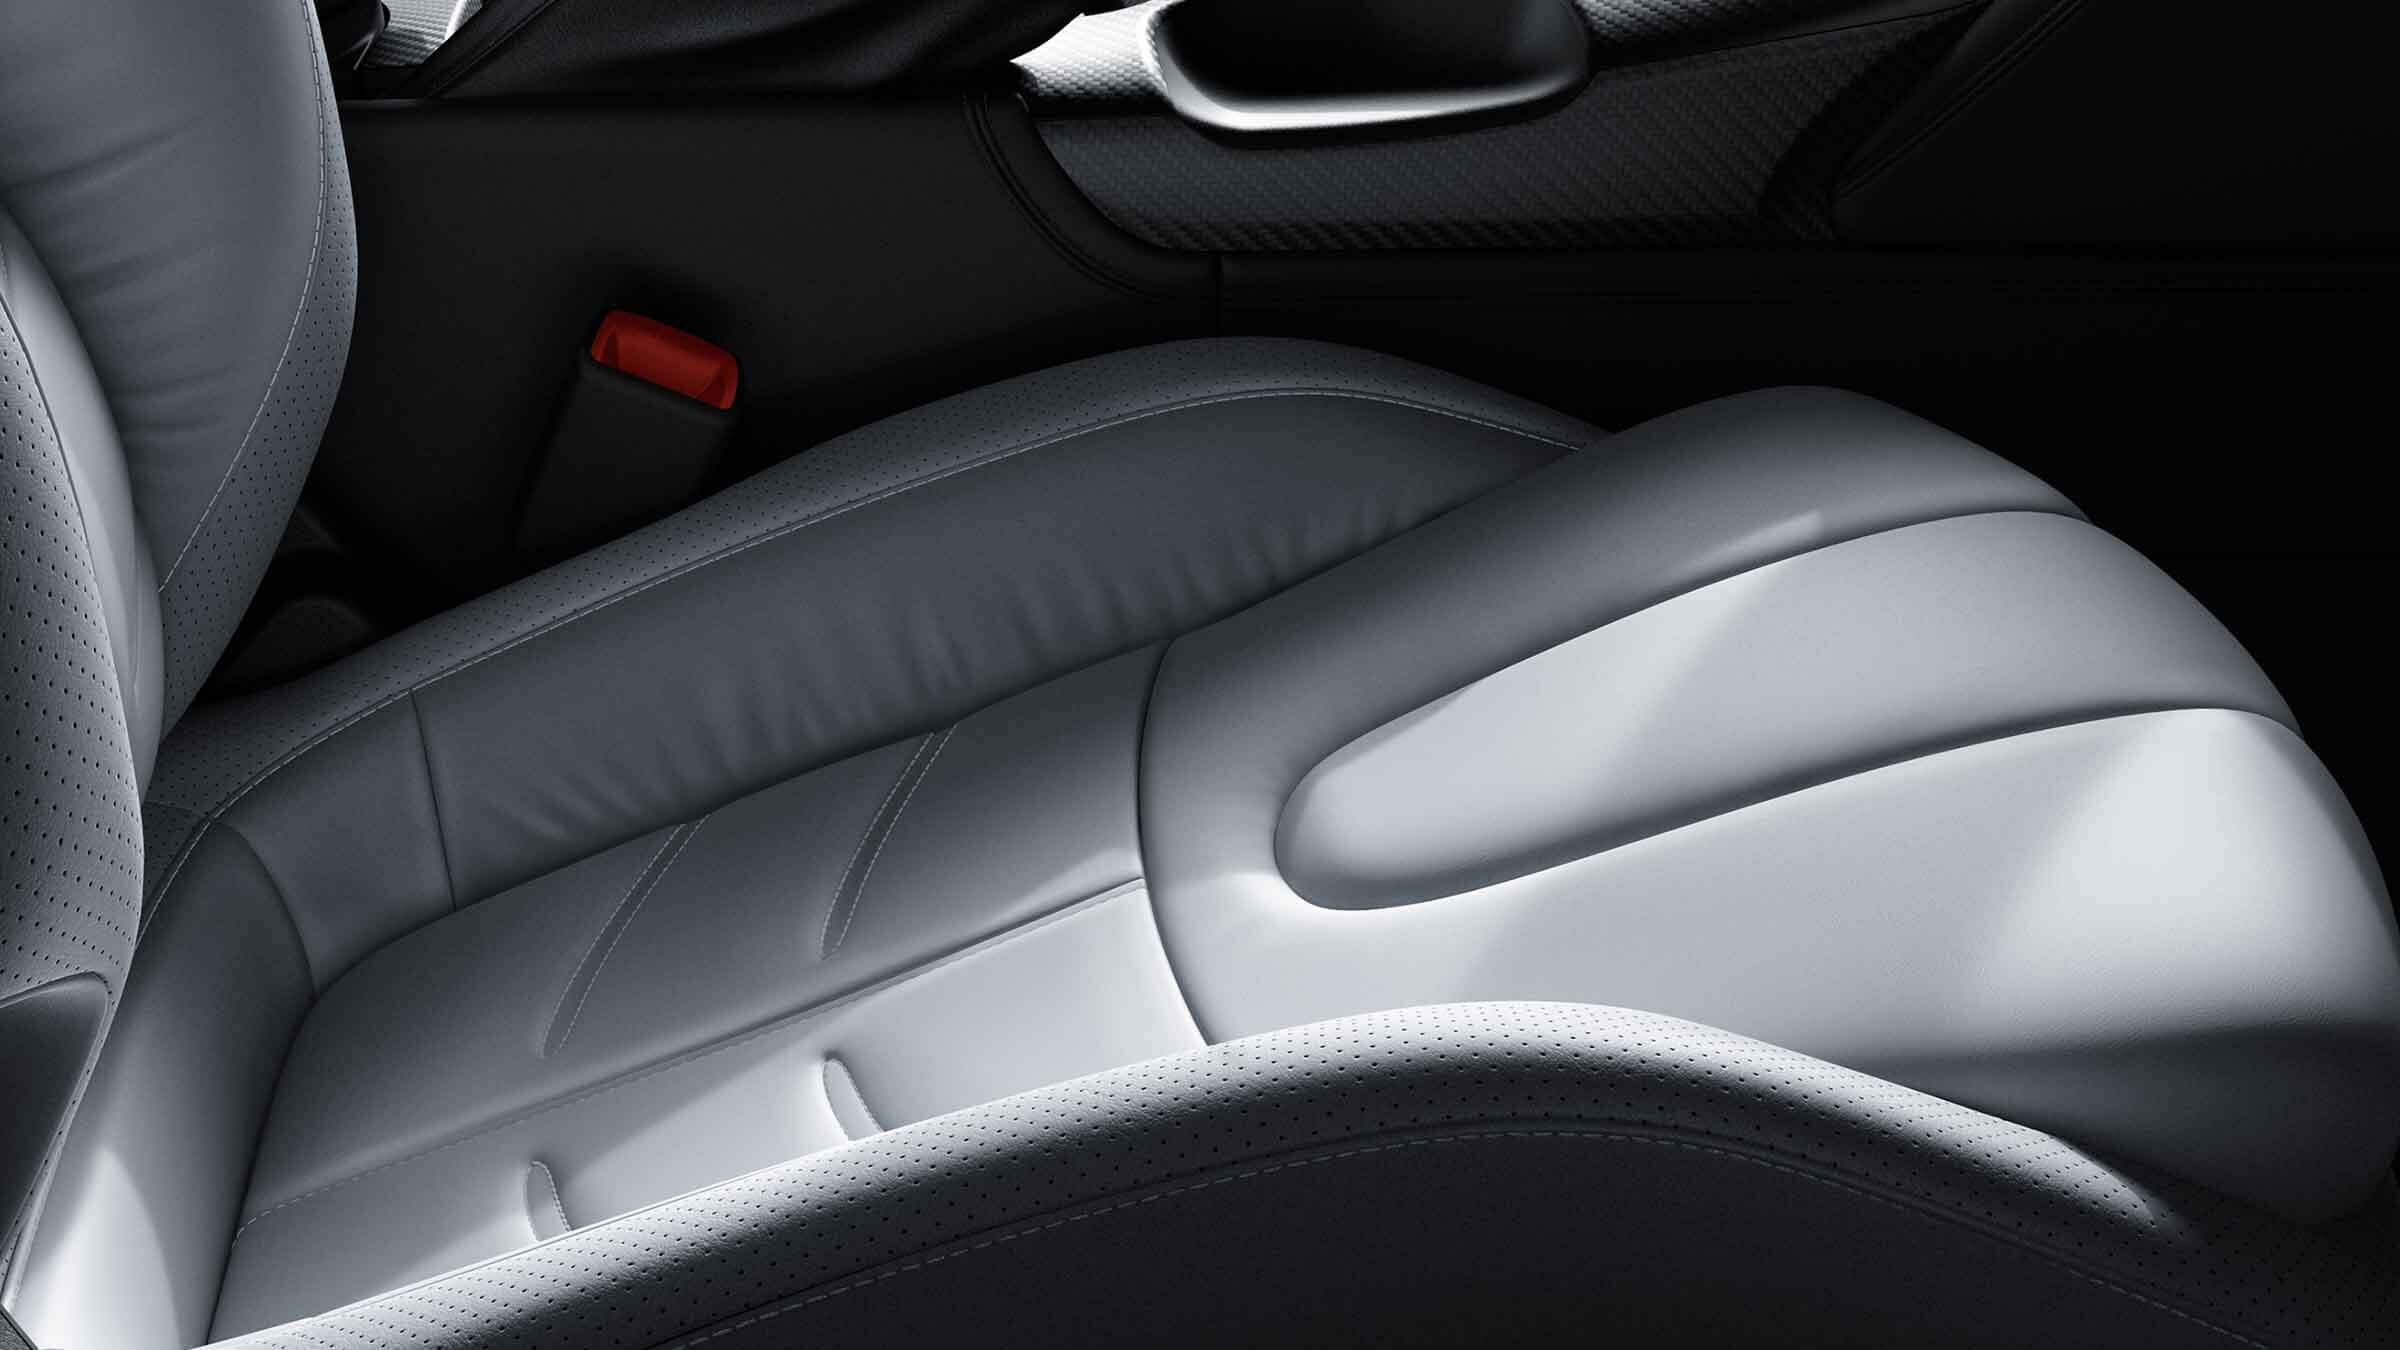 GT-R seat cushion Image